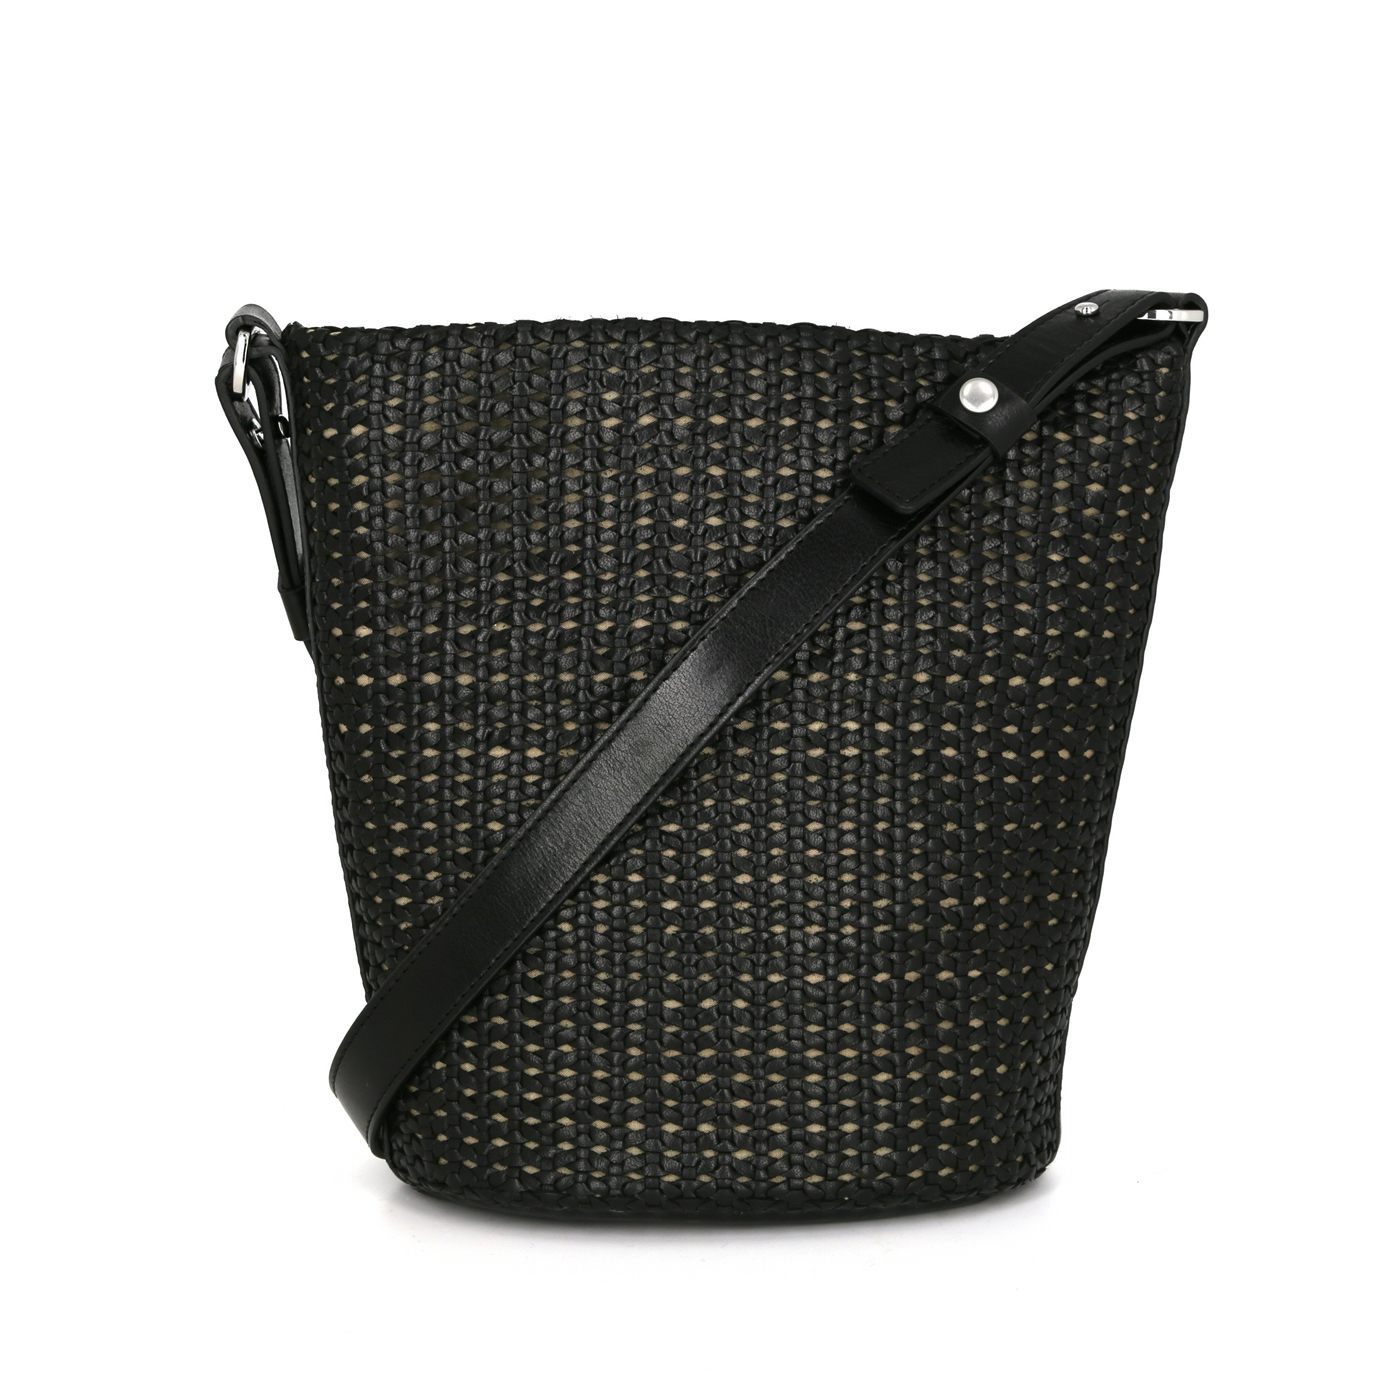 Bilde av Bridge 194 Handbag 2 301 002 194 39 010011